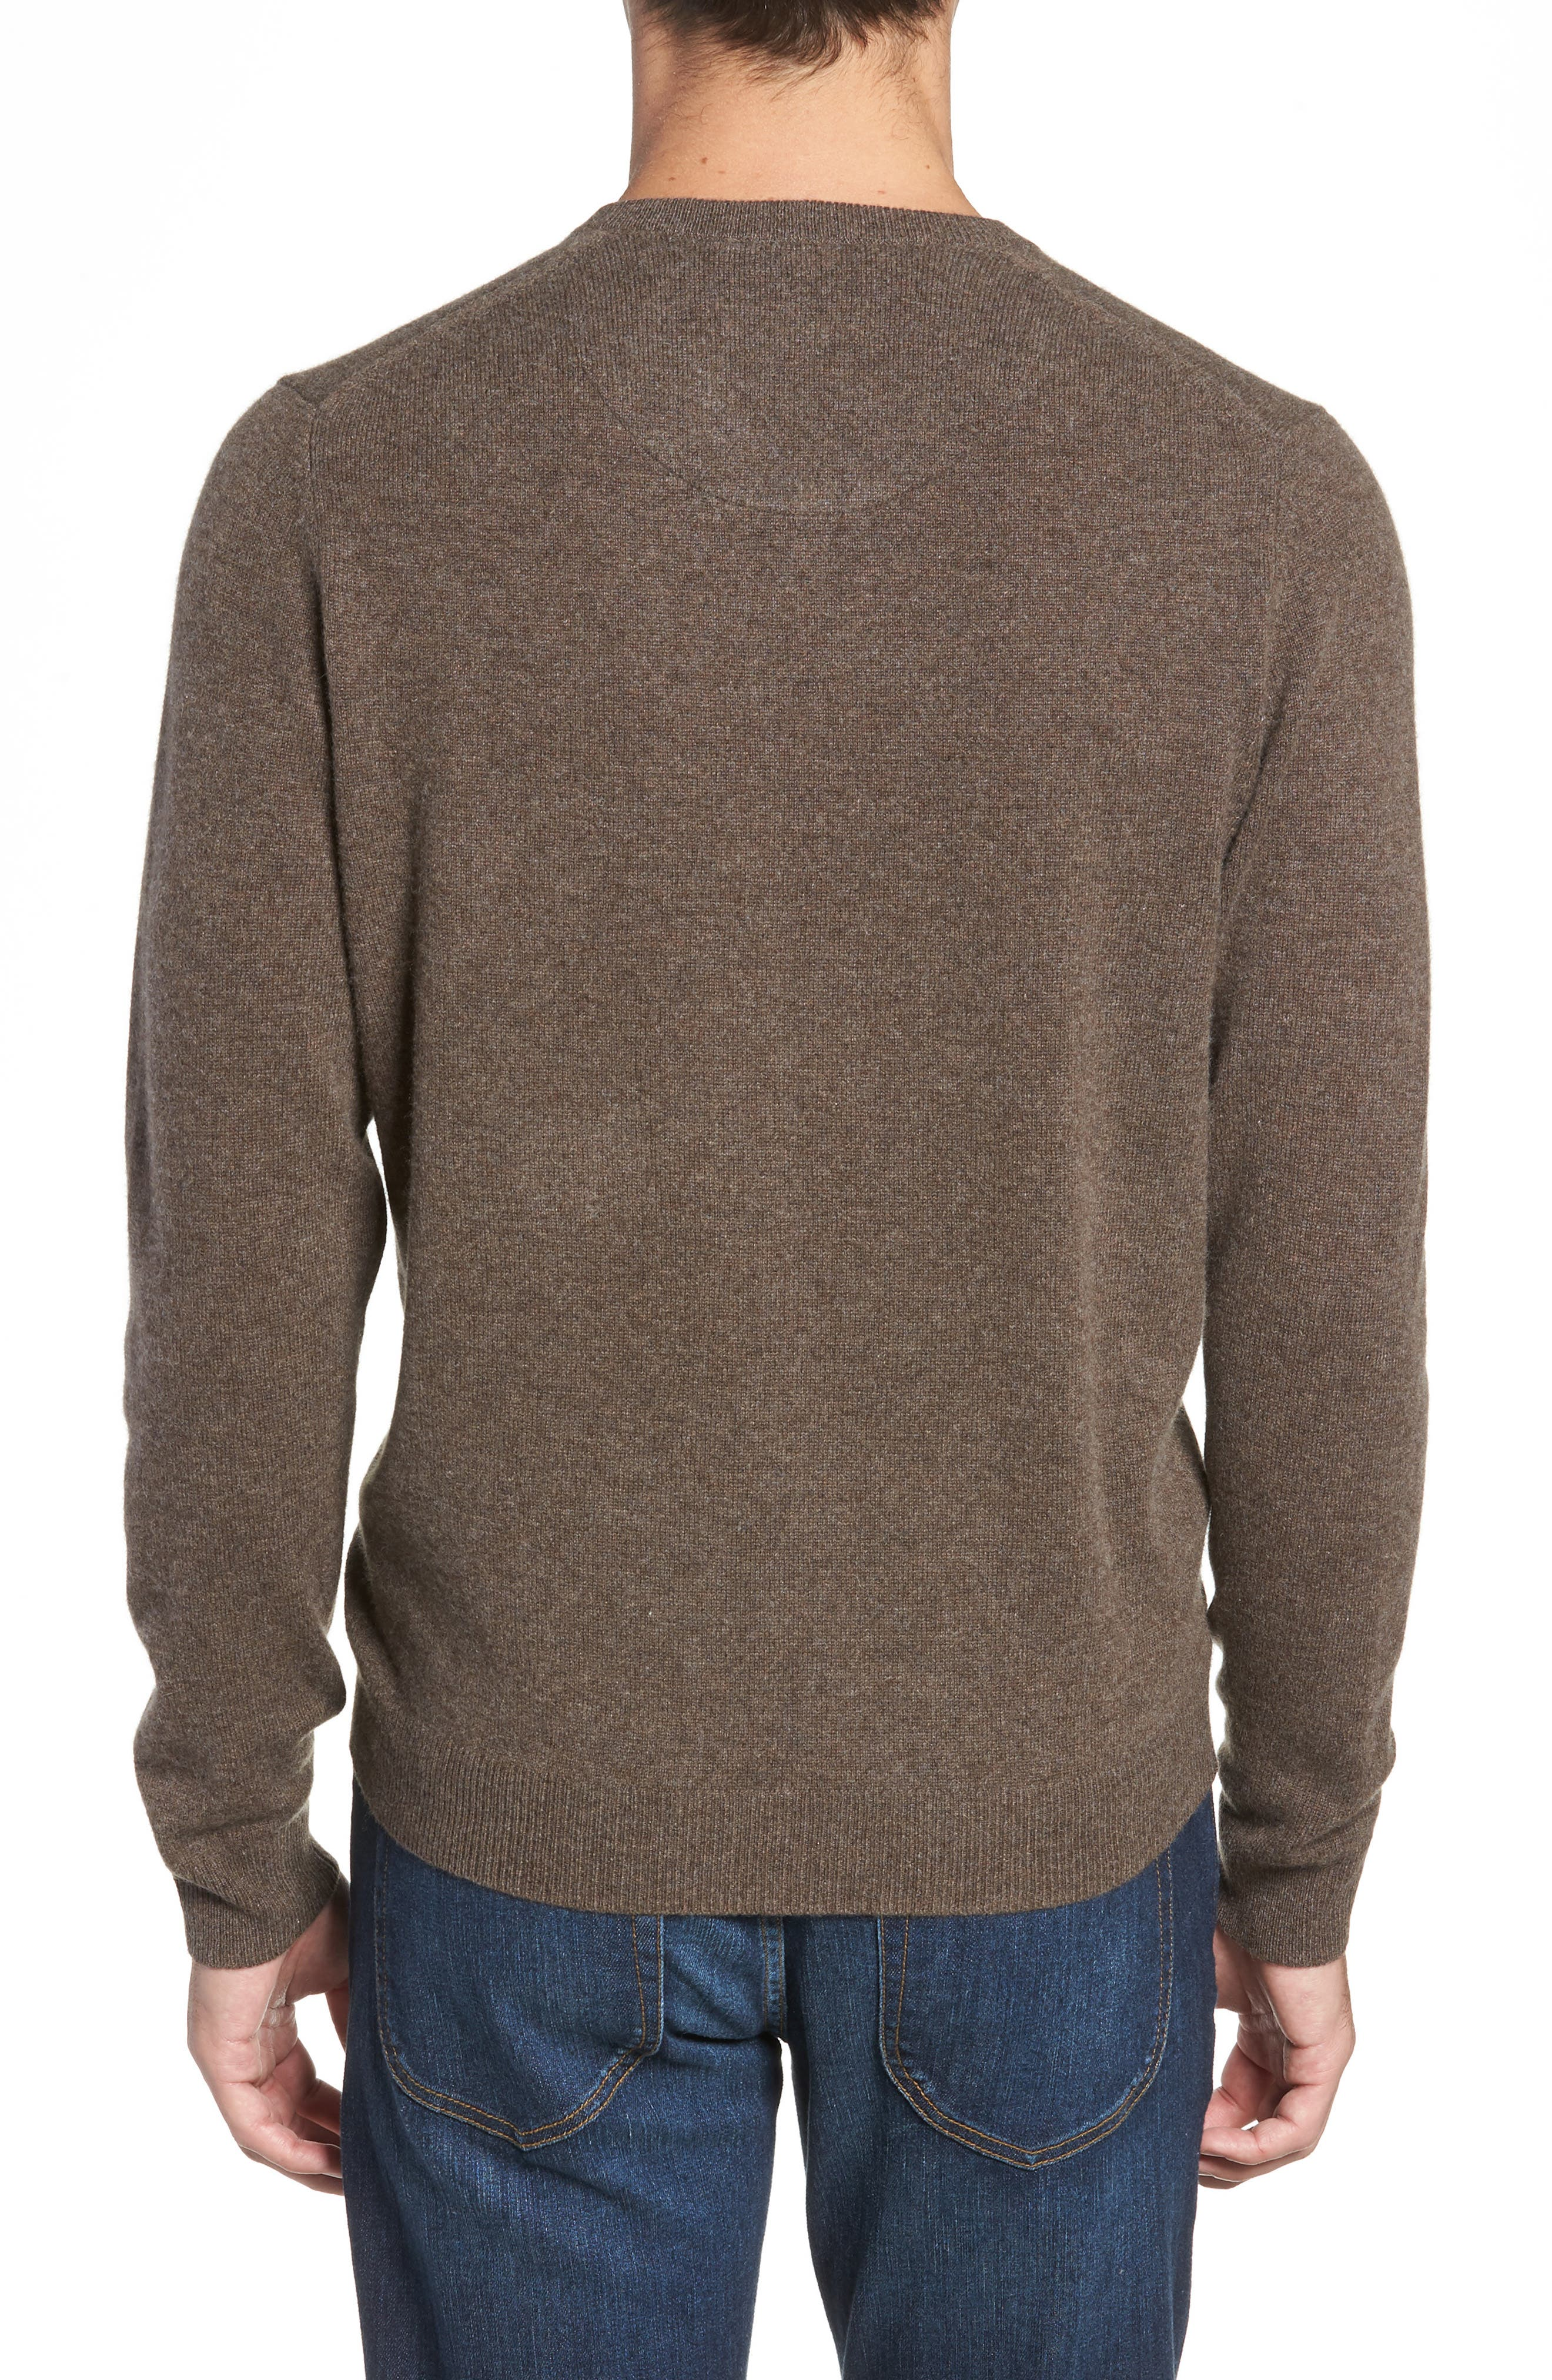 Cashmere V-Neck Sweater,                             Alternate thumbnail 2, color,                             BROWN FAWN